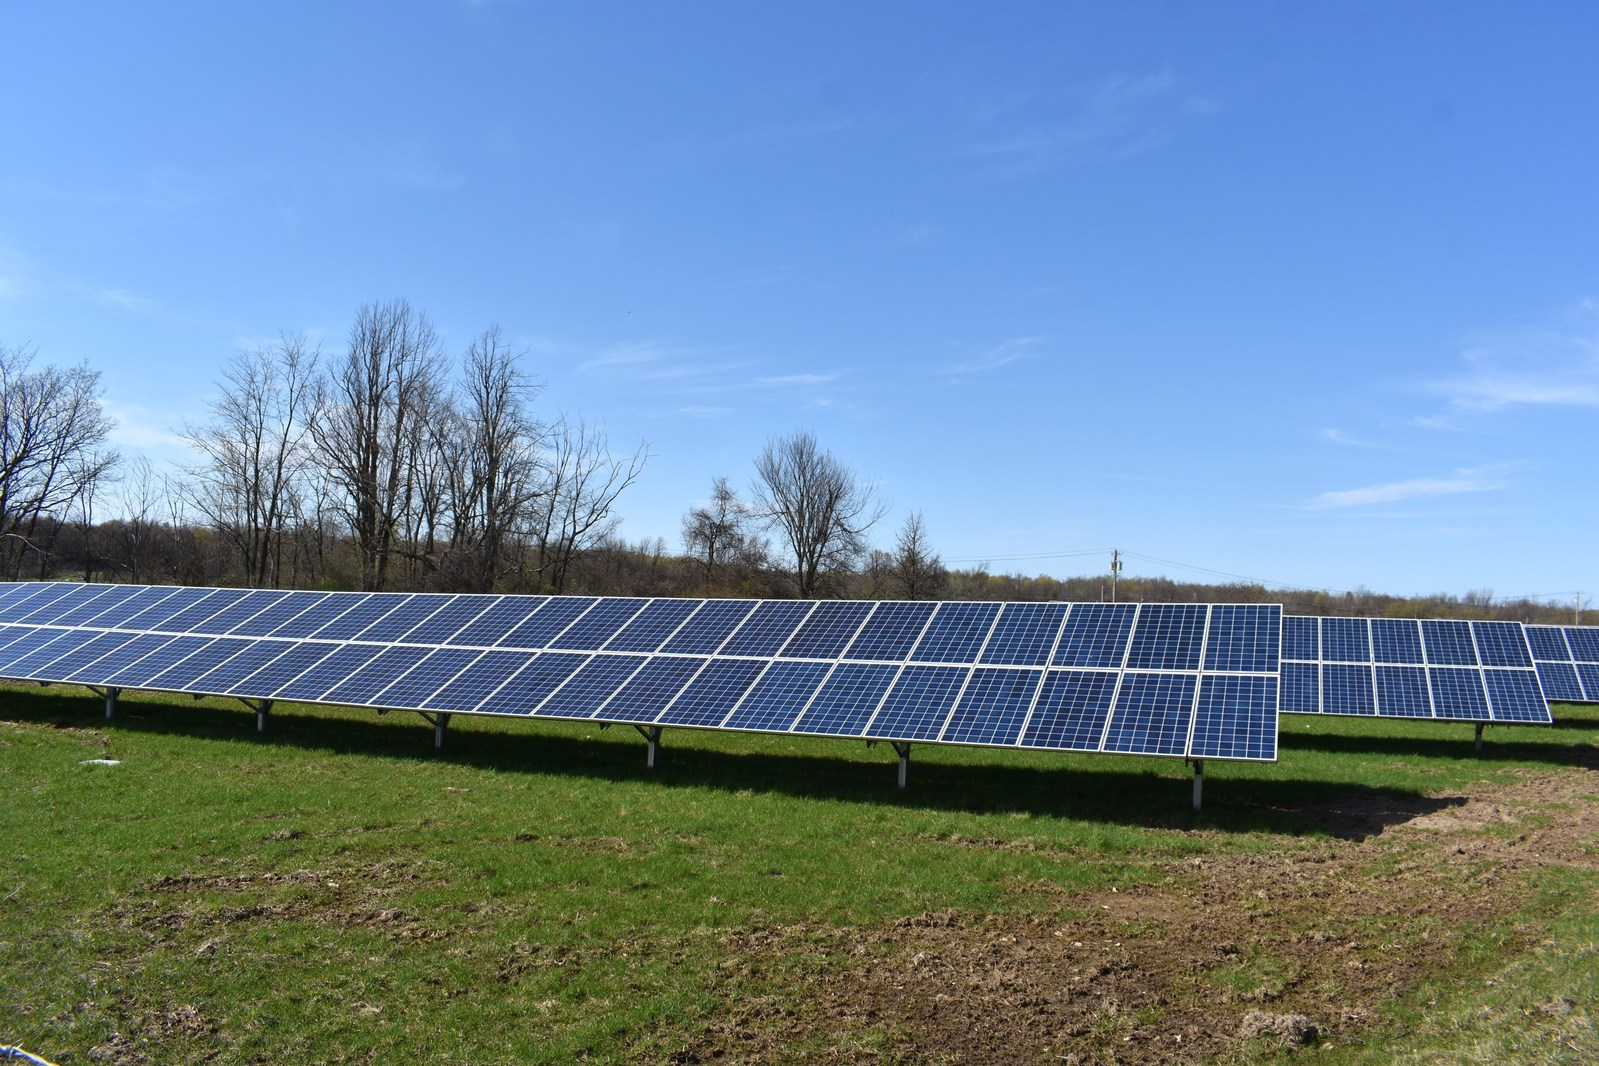 The community solar project in Somerville is already 50% subscribed. Source: PR Newswire/Ben Foster